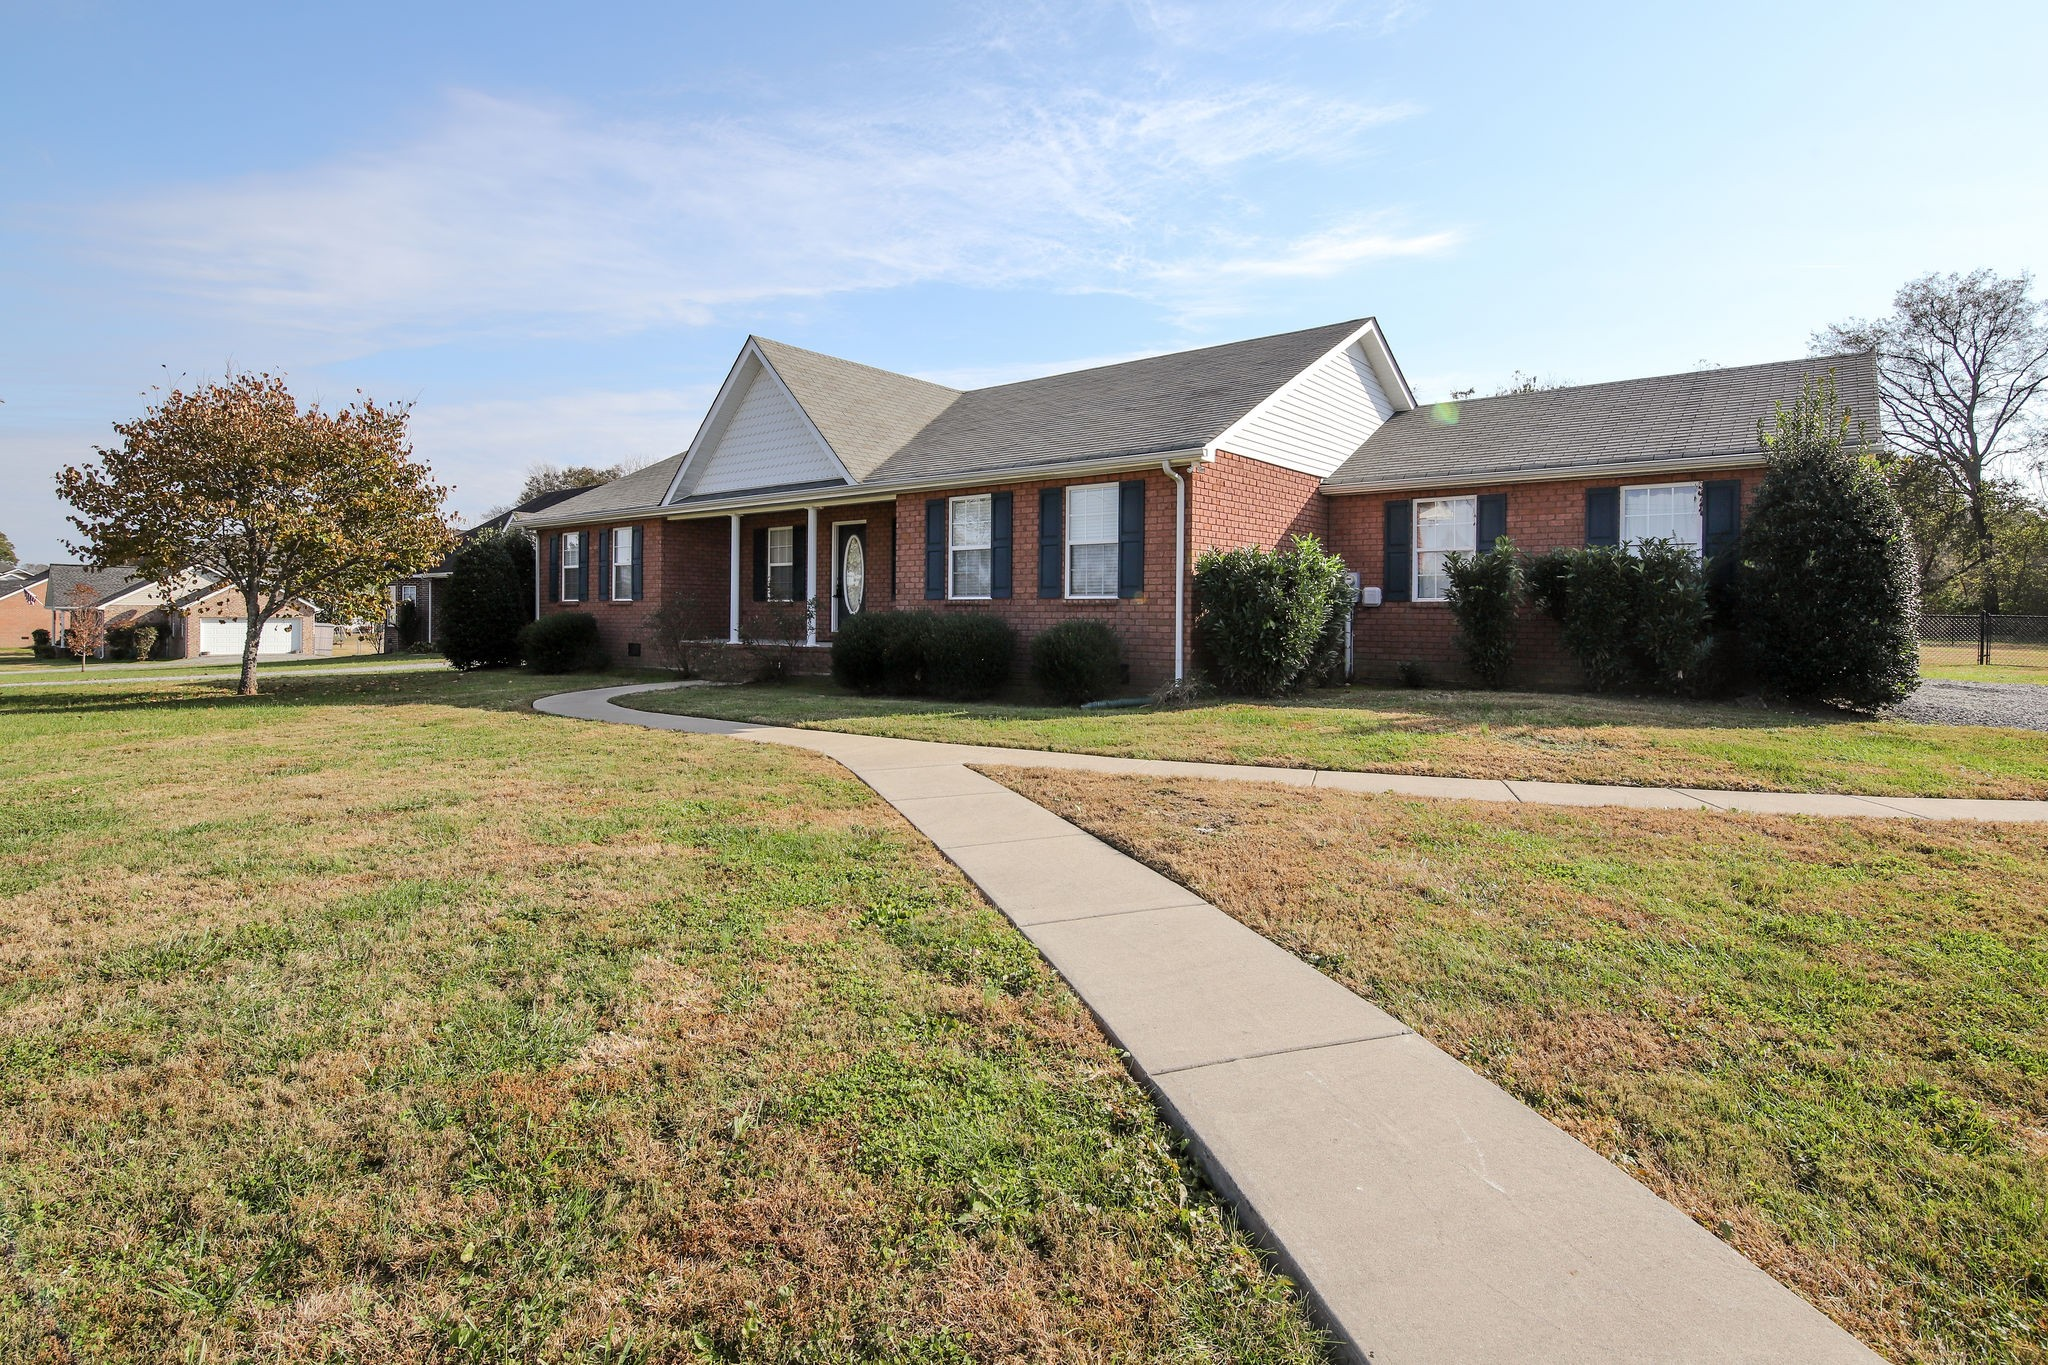 1062 Pinnacle Way, Castalian Springs, TN 37031 - Castalian Springs, TN real estate listing